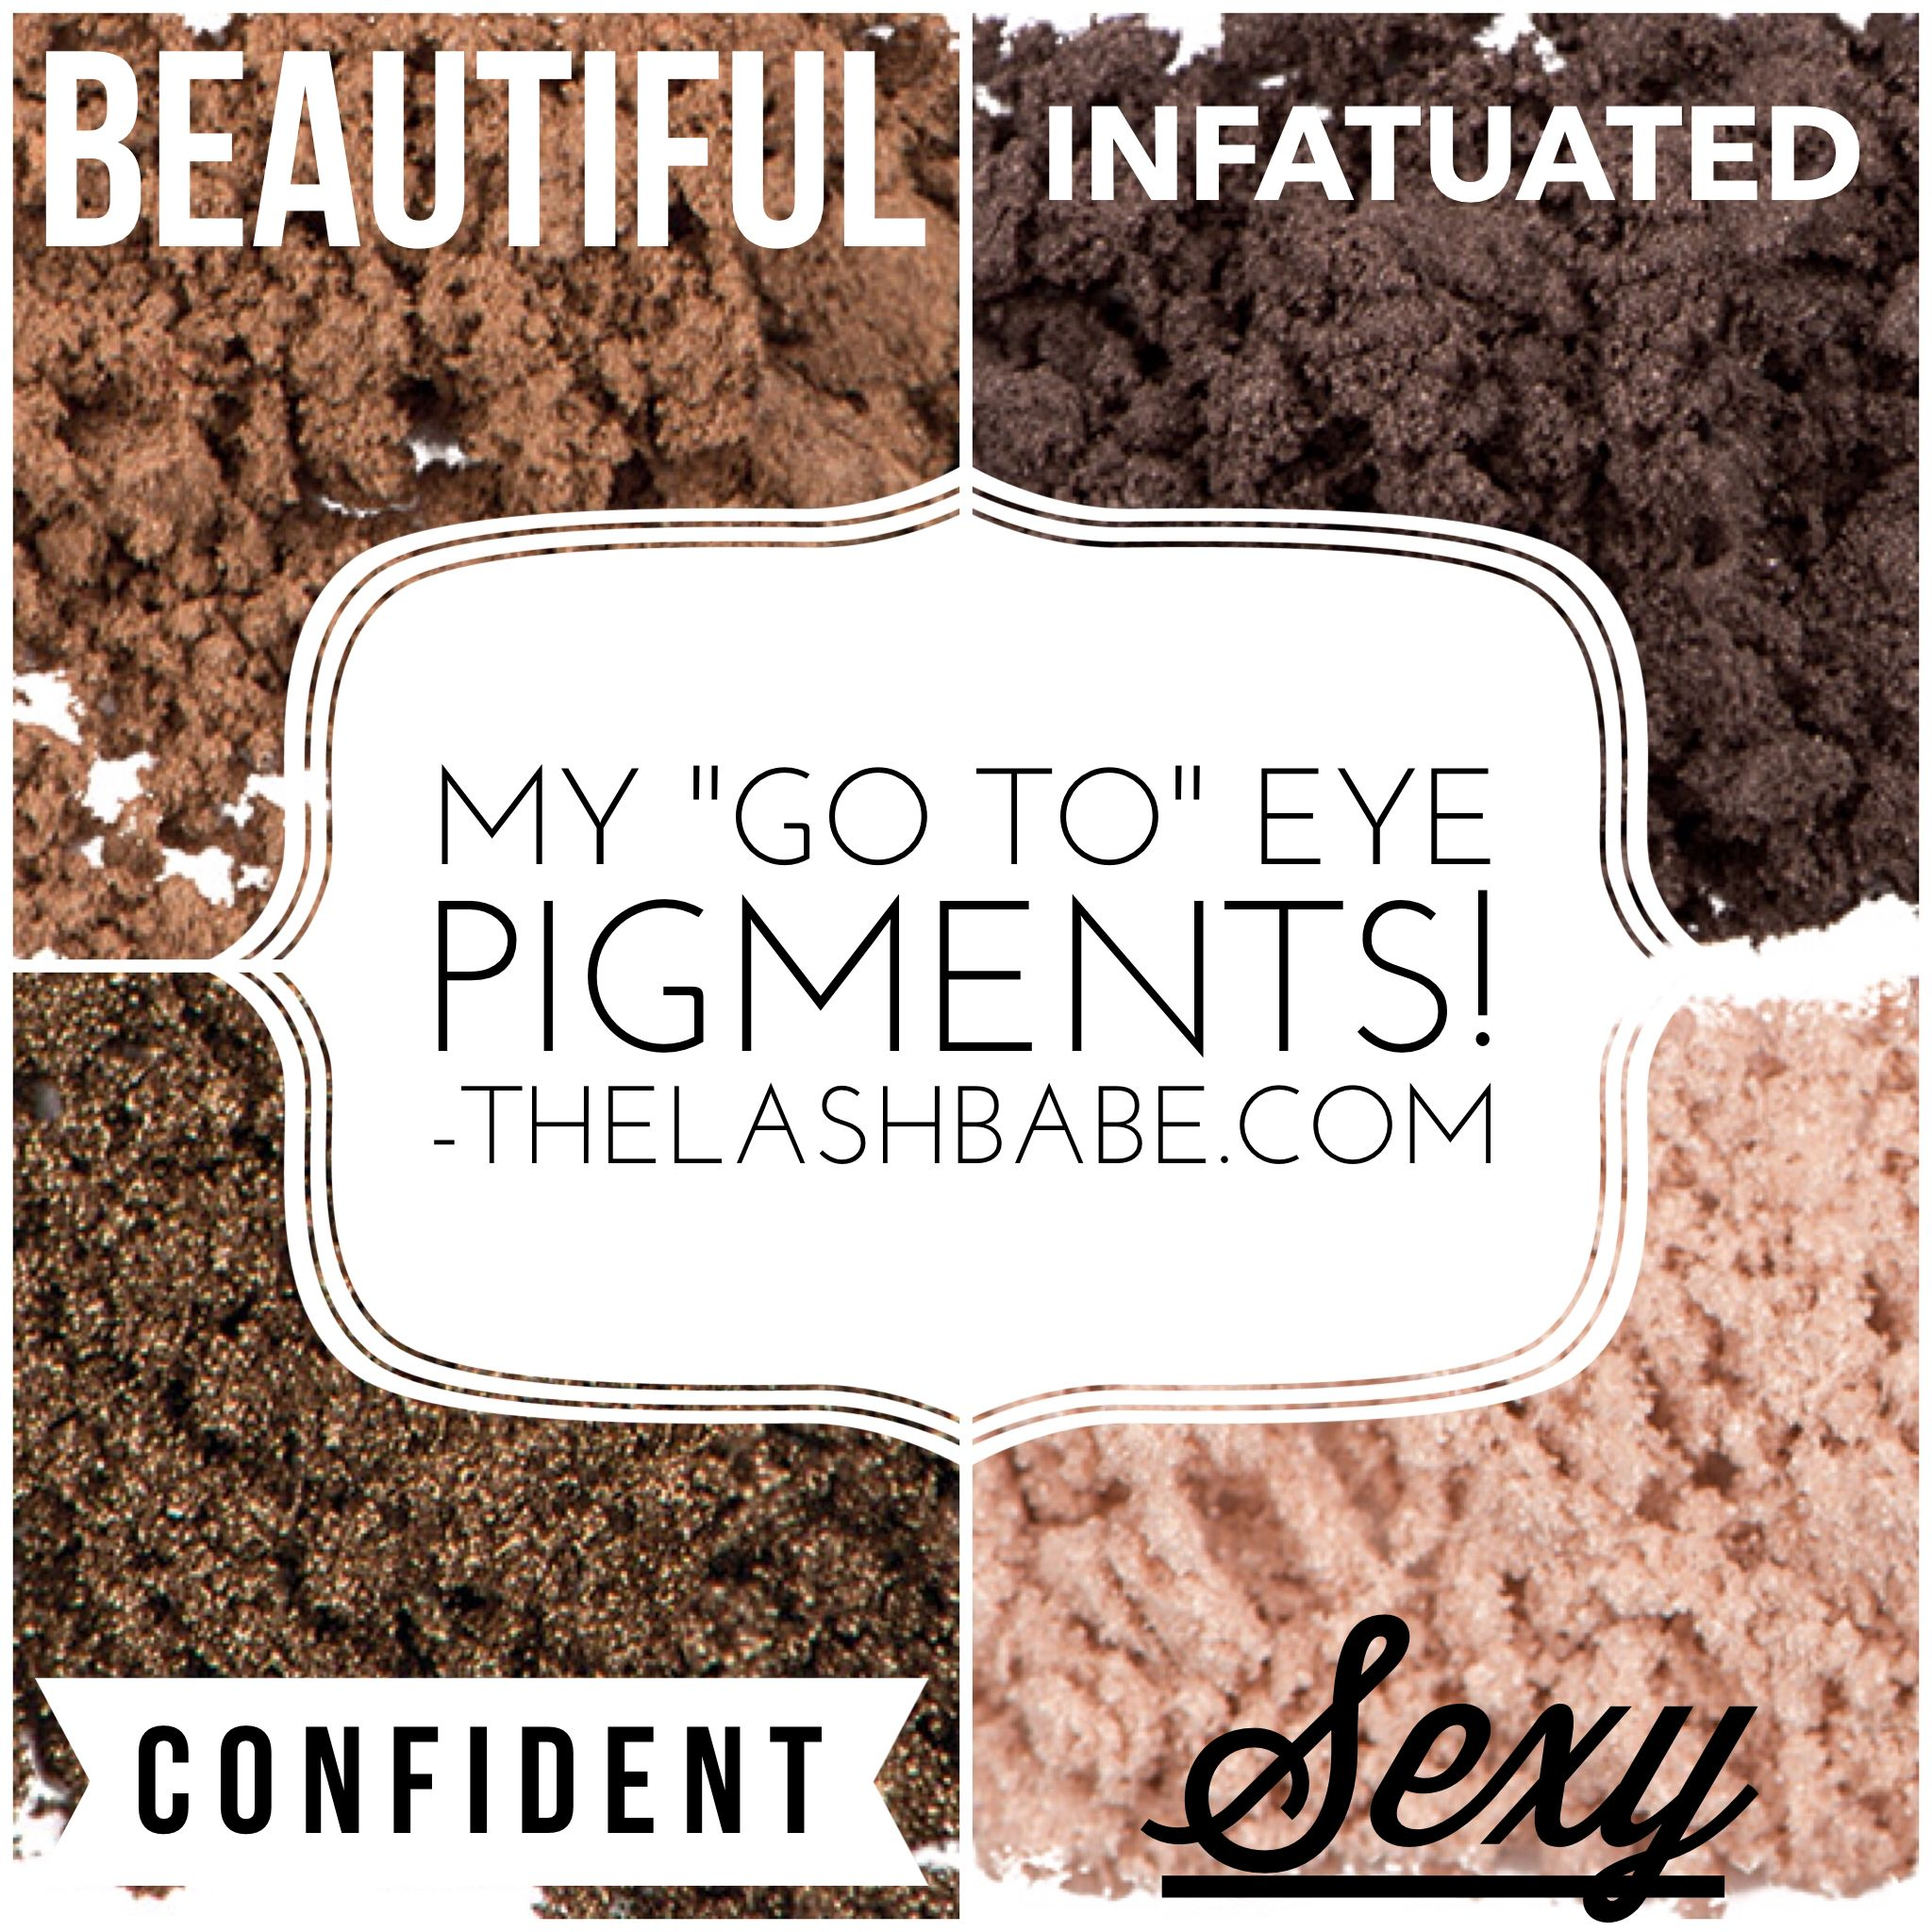 My 4 favorite Mineral Eye Pigments from Younique!! Get all 4 for $45!!